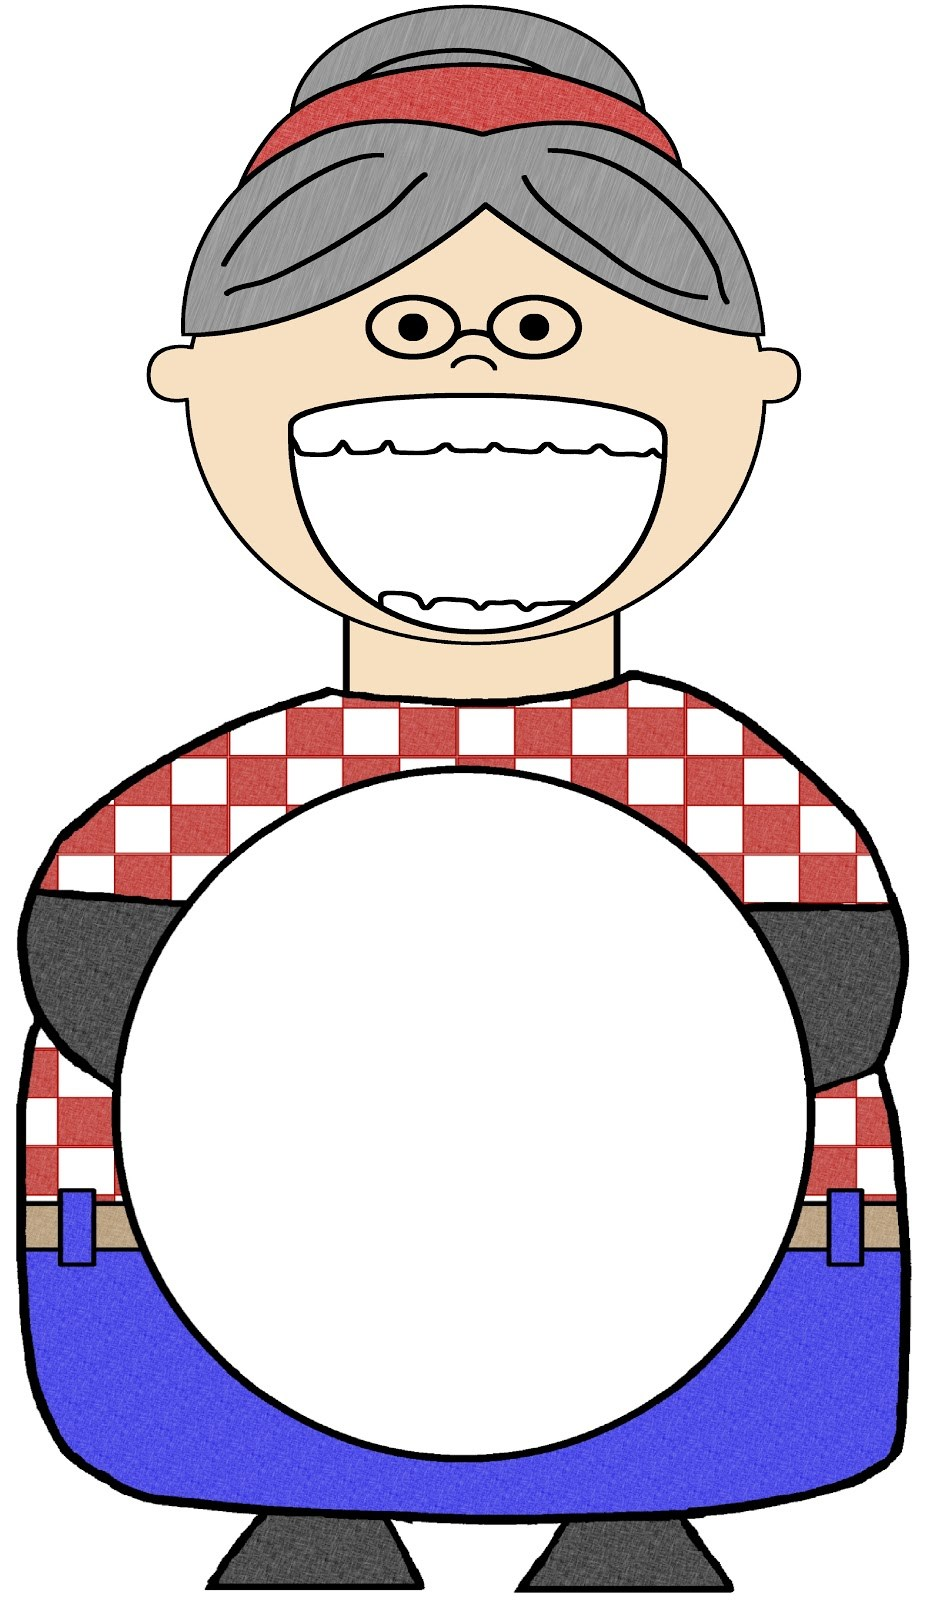 Old lady who swallowed a fly clipart clipart royalty free stock Old lady who swallowed a fly clipart 2 » Clipart Portal clipart royalty free stock